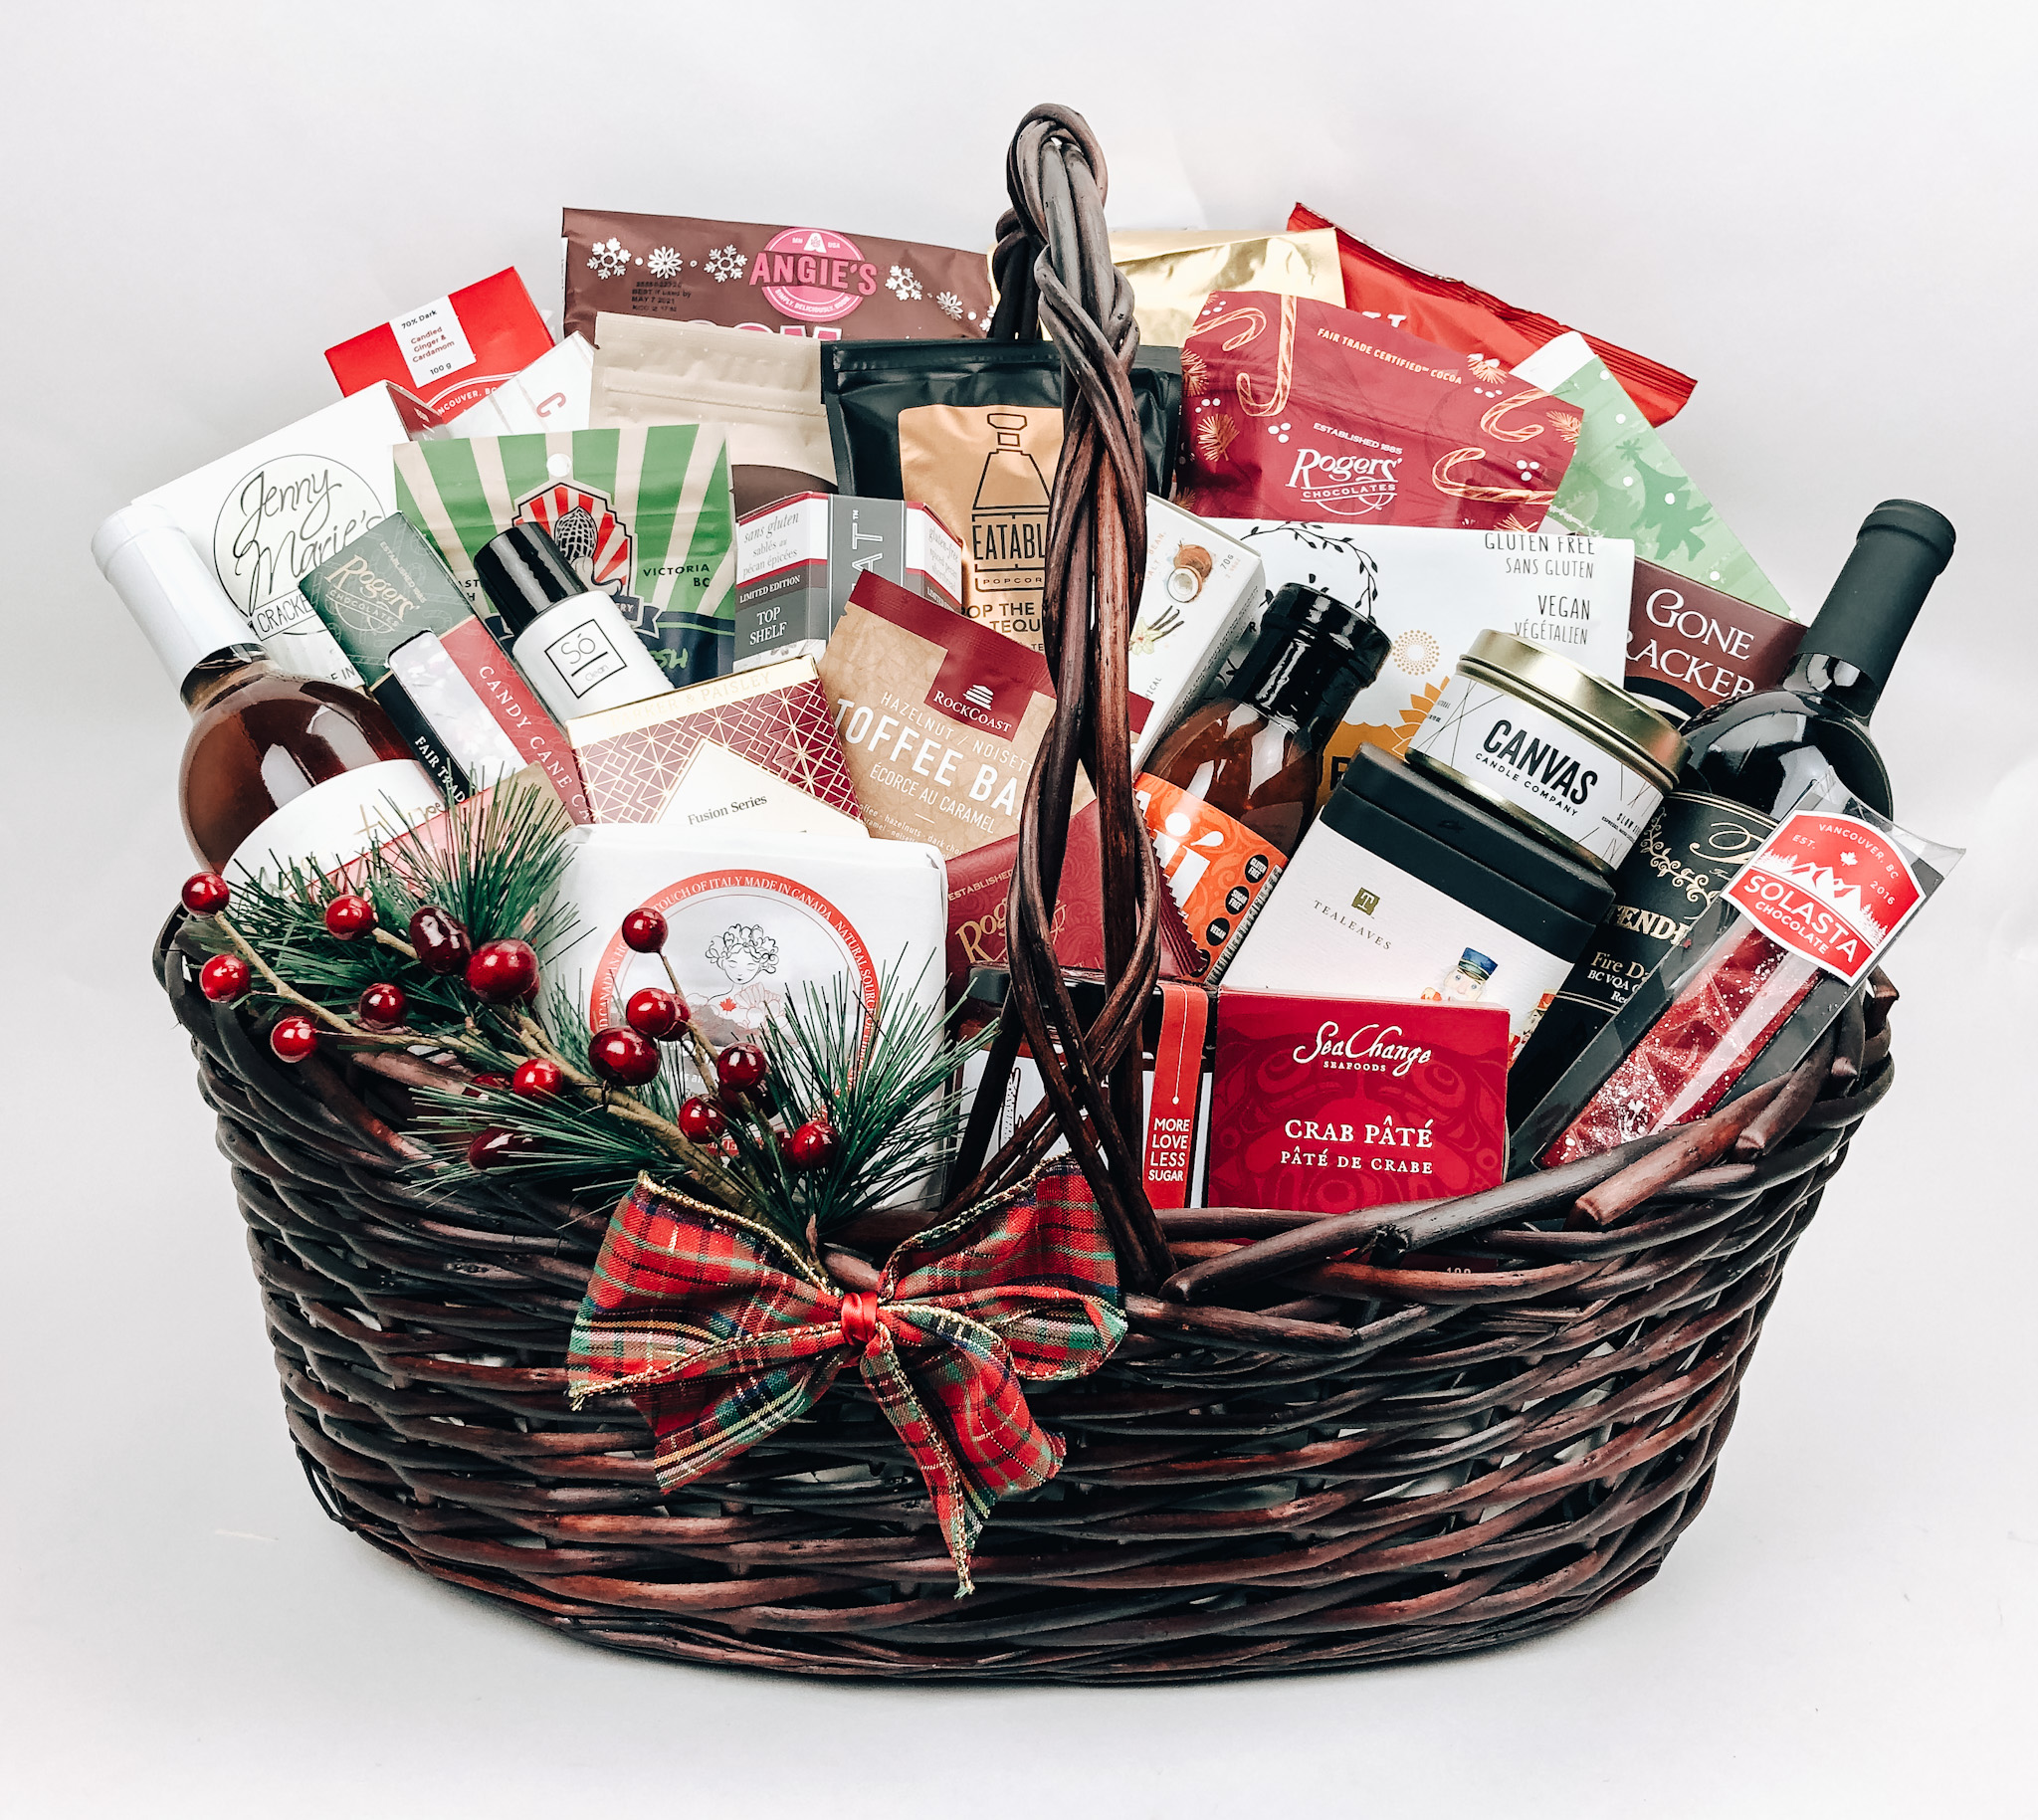 A gift basket filled with various items on a white background